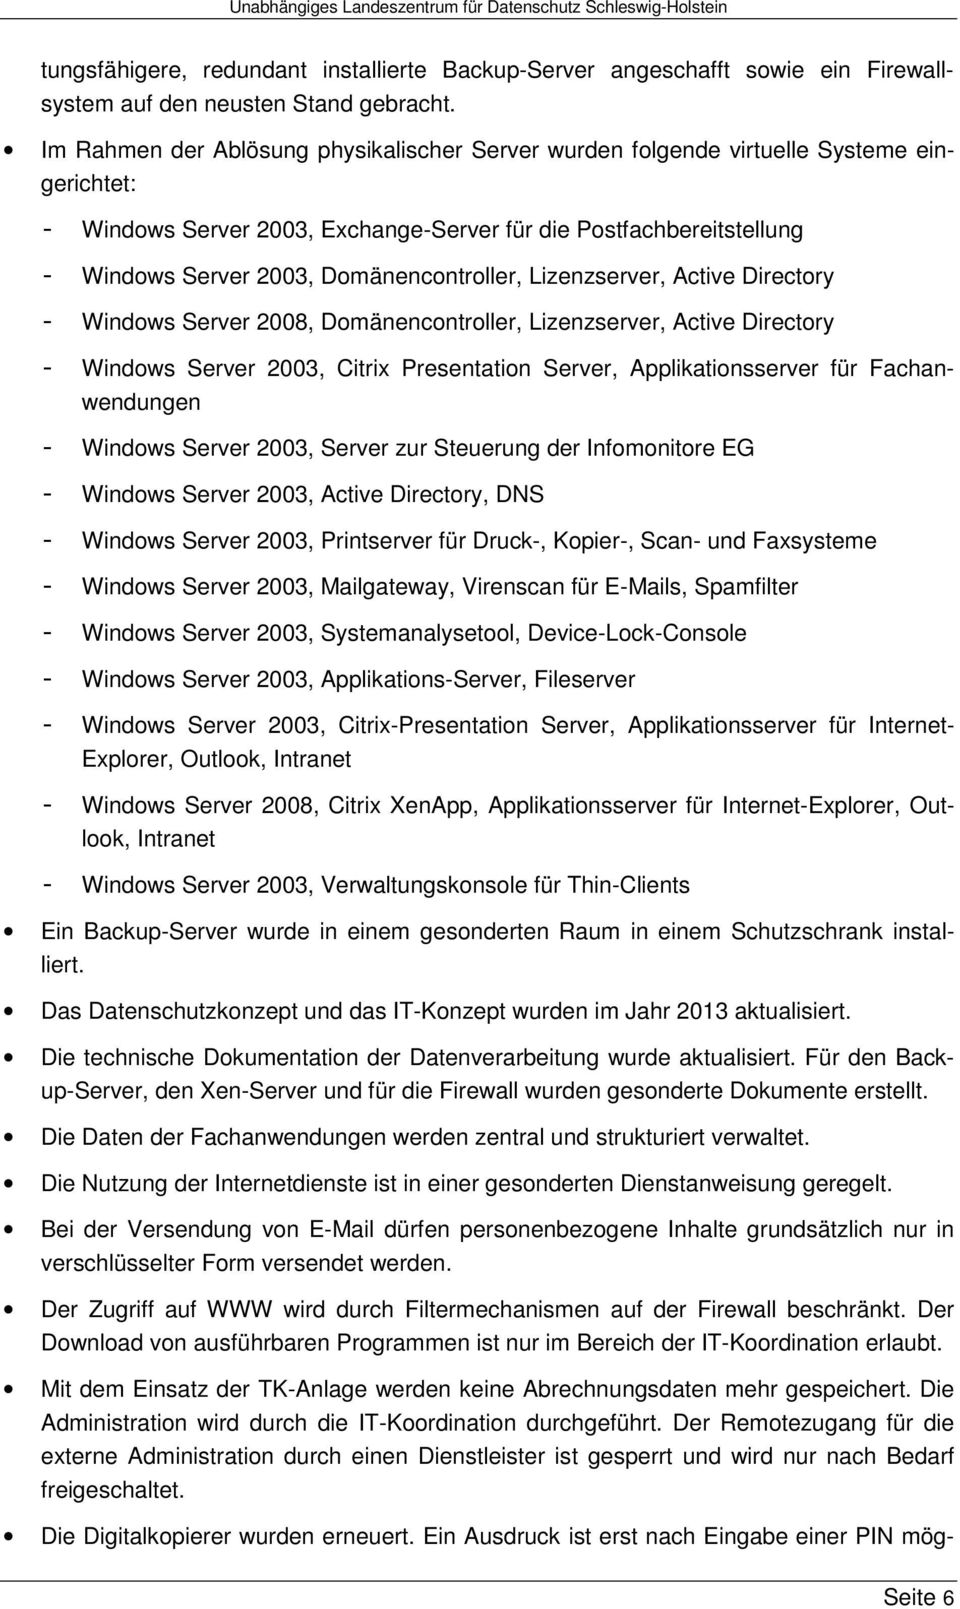 Domänencontroller, Lizenzserver, Active Directory - Windows Server 2008, Domänencontroller, Lizenzserver, Active Directory - Windows Server 2003, Citrix Presentation Server, Applikationsserver für